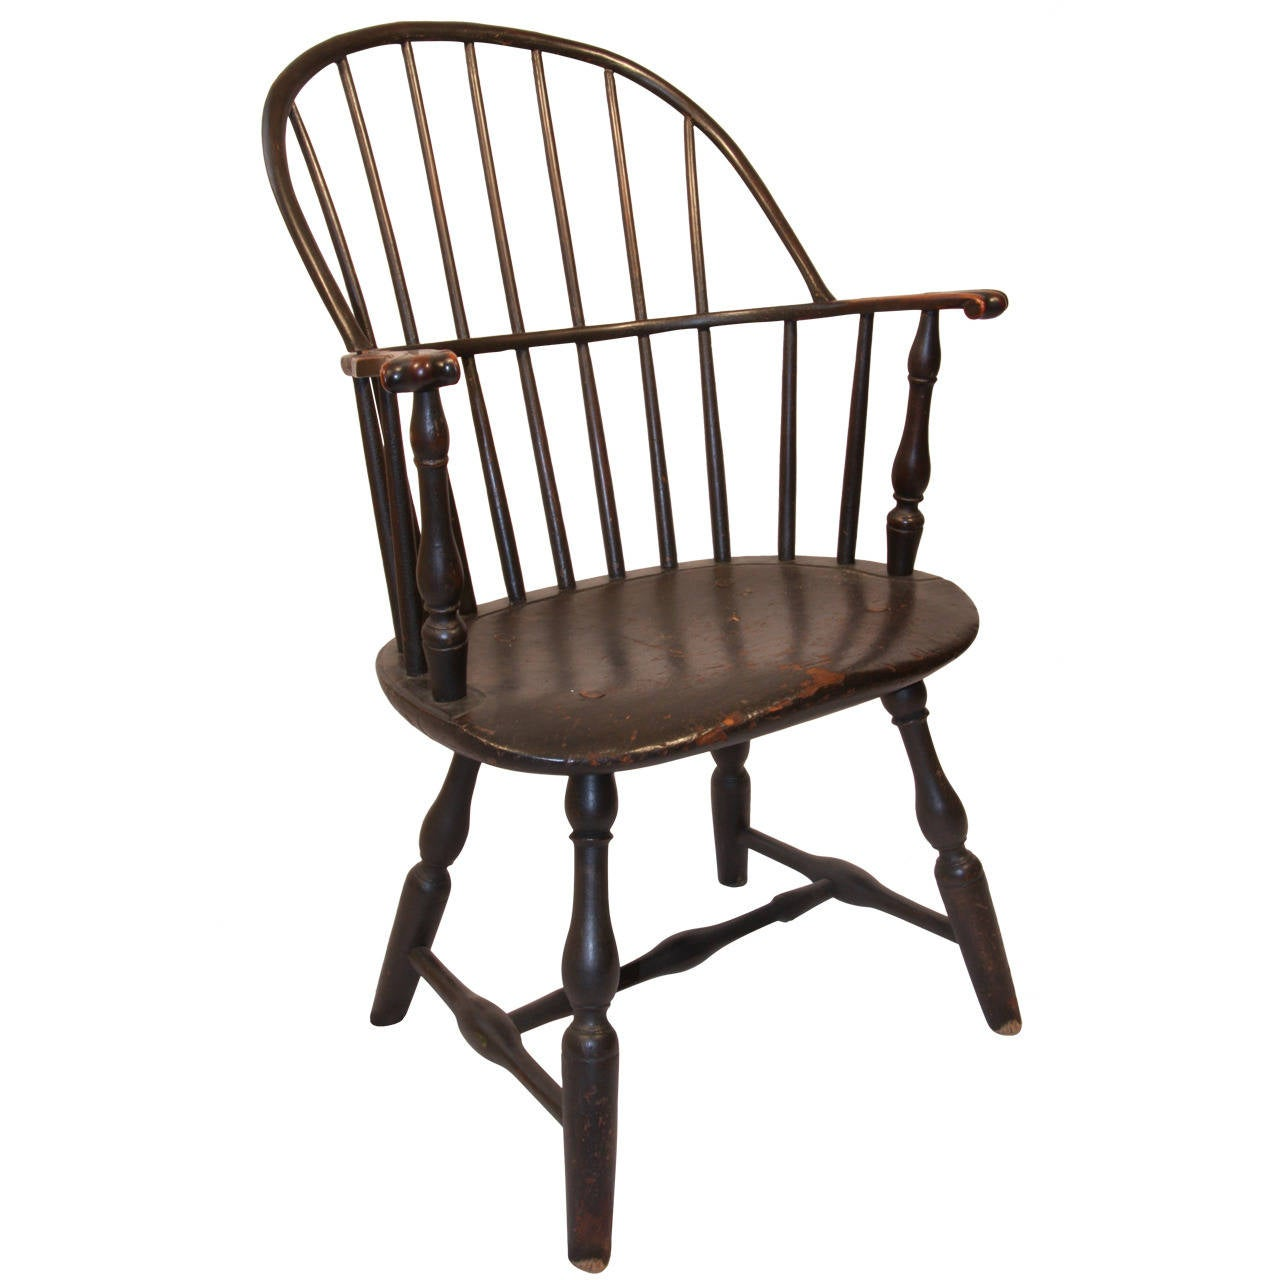 18th Century Connecticut Sack Back Knuckle Arm Windsor Chair 1 - 18th Century Connecticut Sack Back Knuckle Arm Windsor Chair At